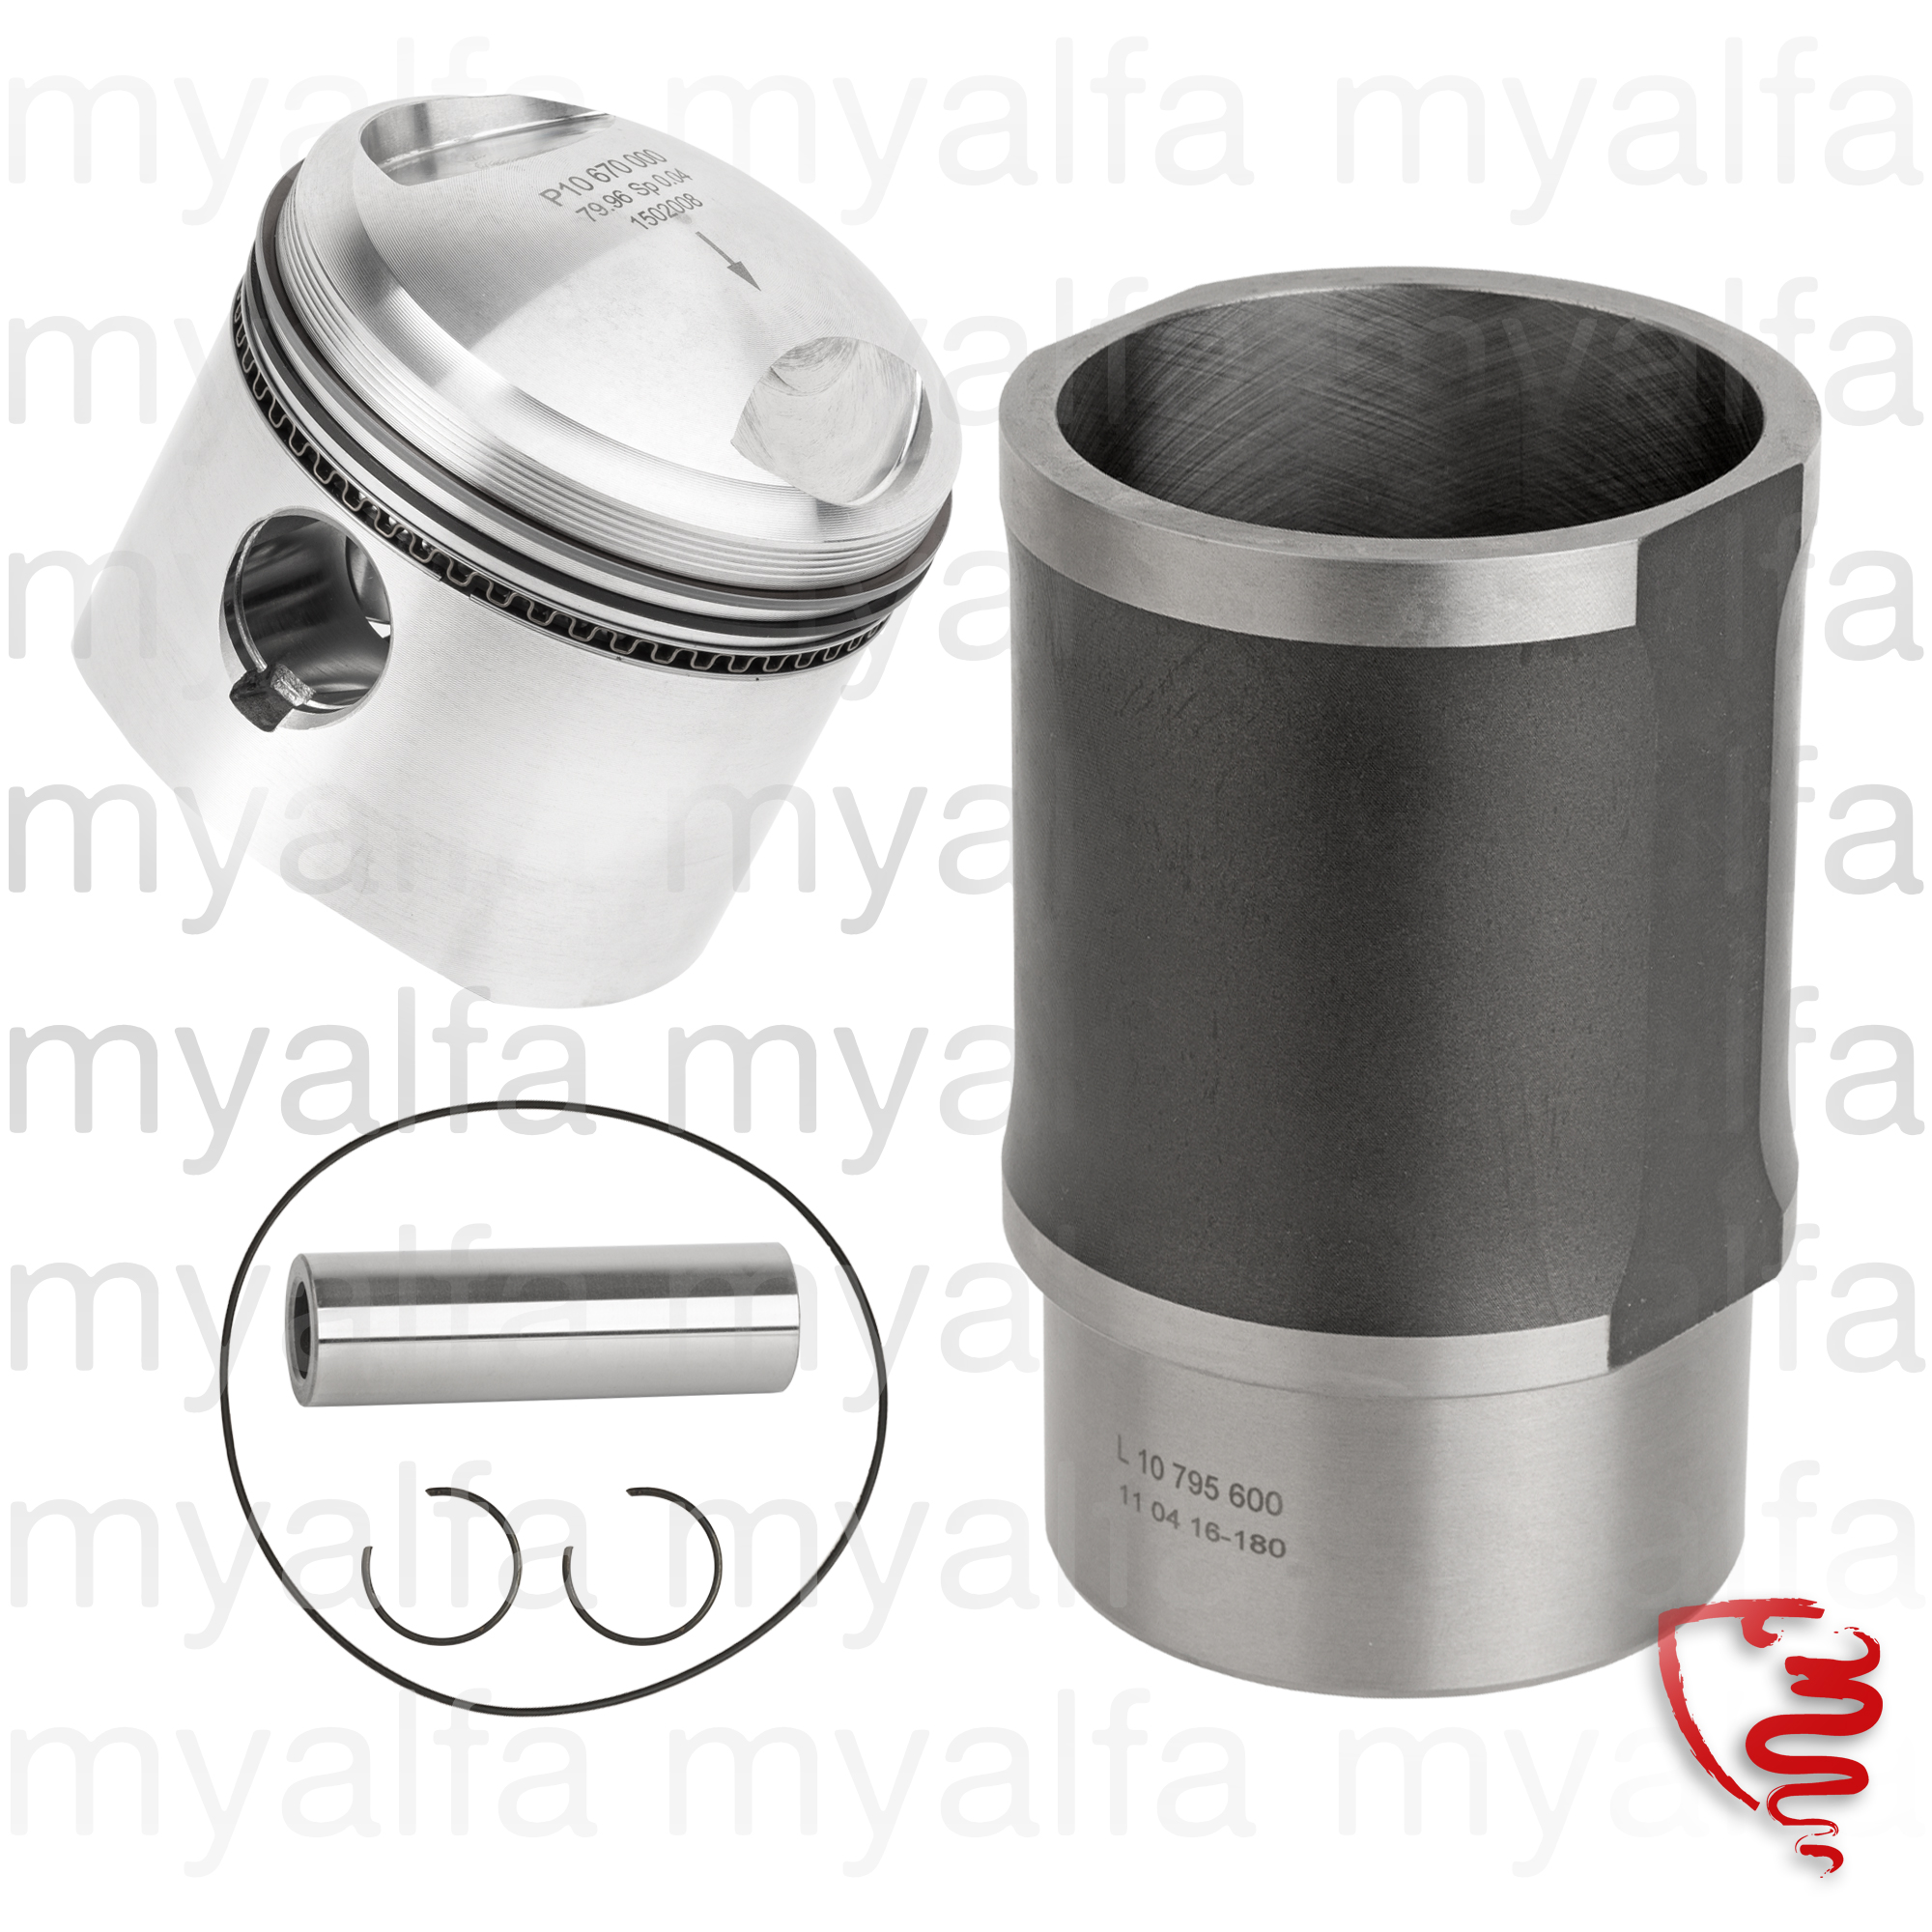 Shirts game, Pistons and segments GTV 1750 unit for 105/115, Engine, Engine Block, Piston/liner